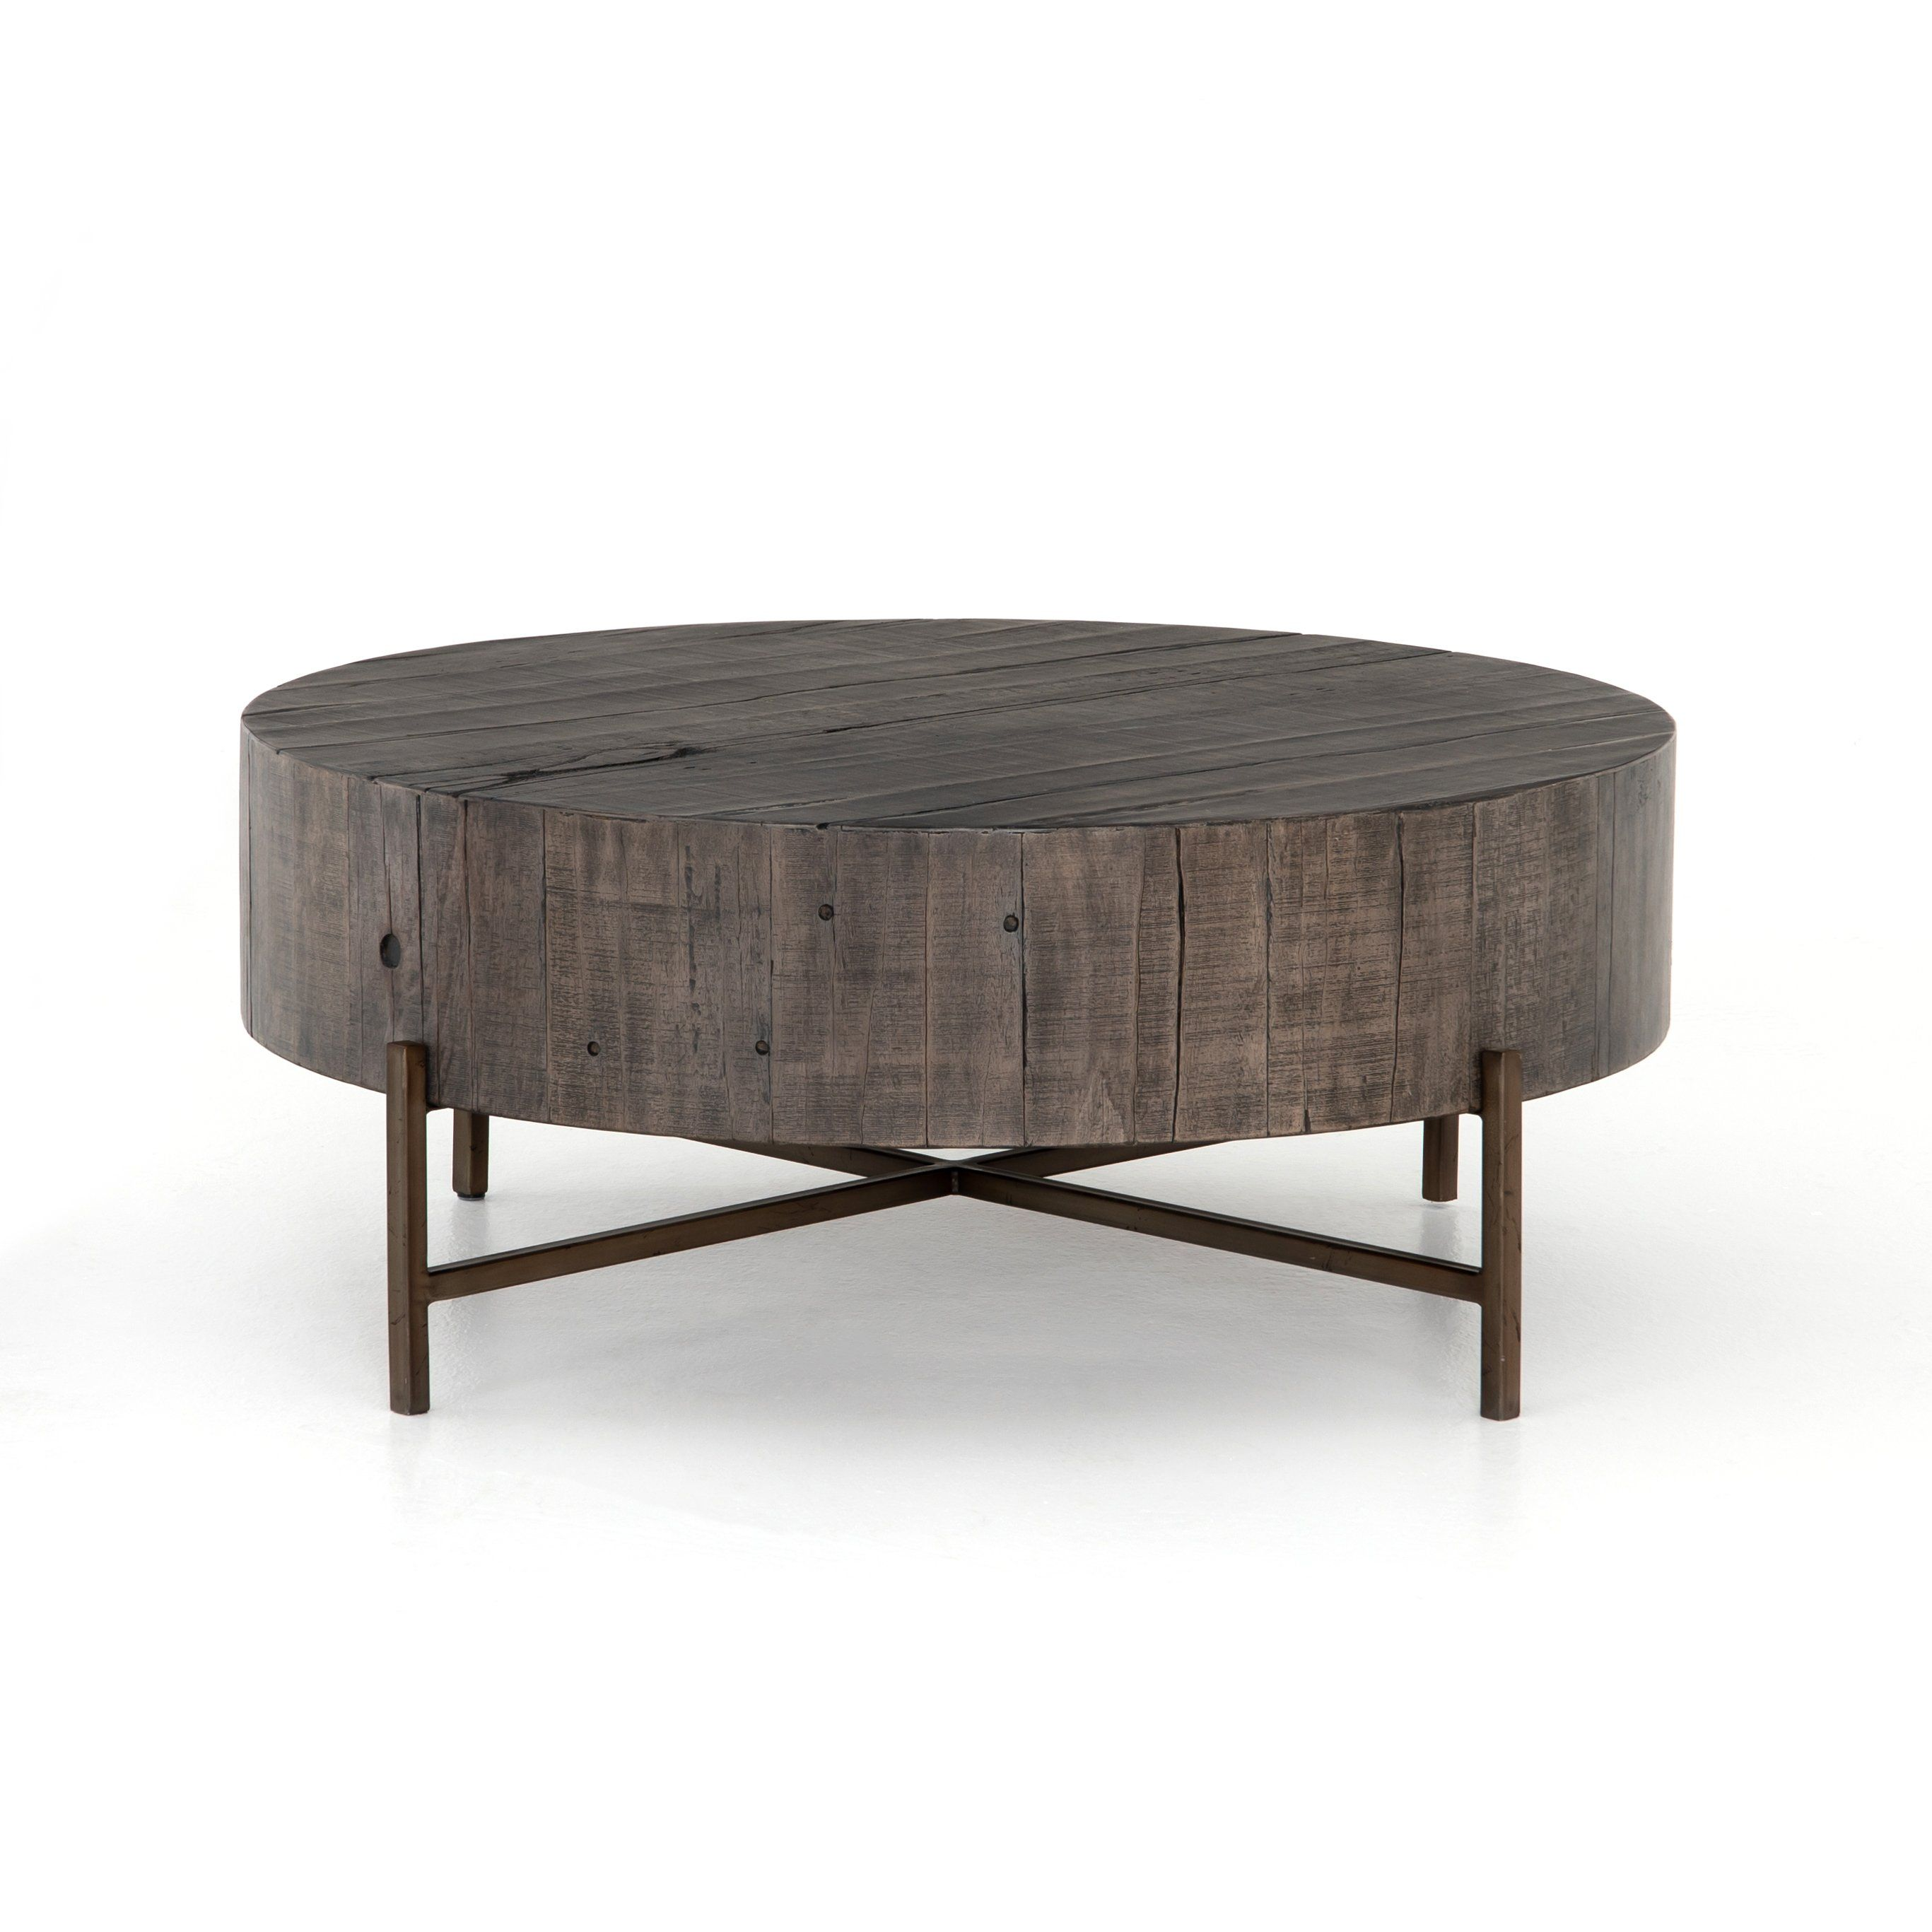 Pierce Coffee Table Brown Beam Furniture Decor Coffee Table Mid Century Modern Coffee Table Coffee Table Square [ 2733 x 2733 Pixel ]